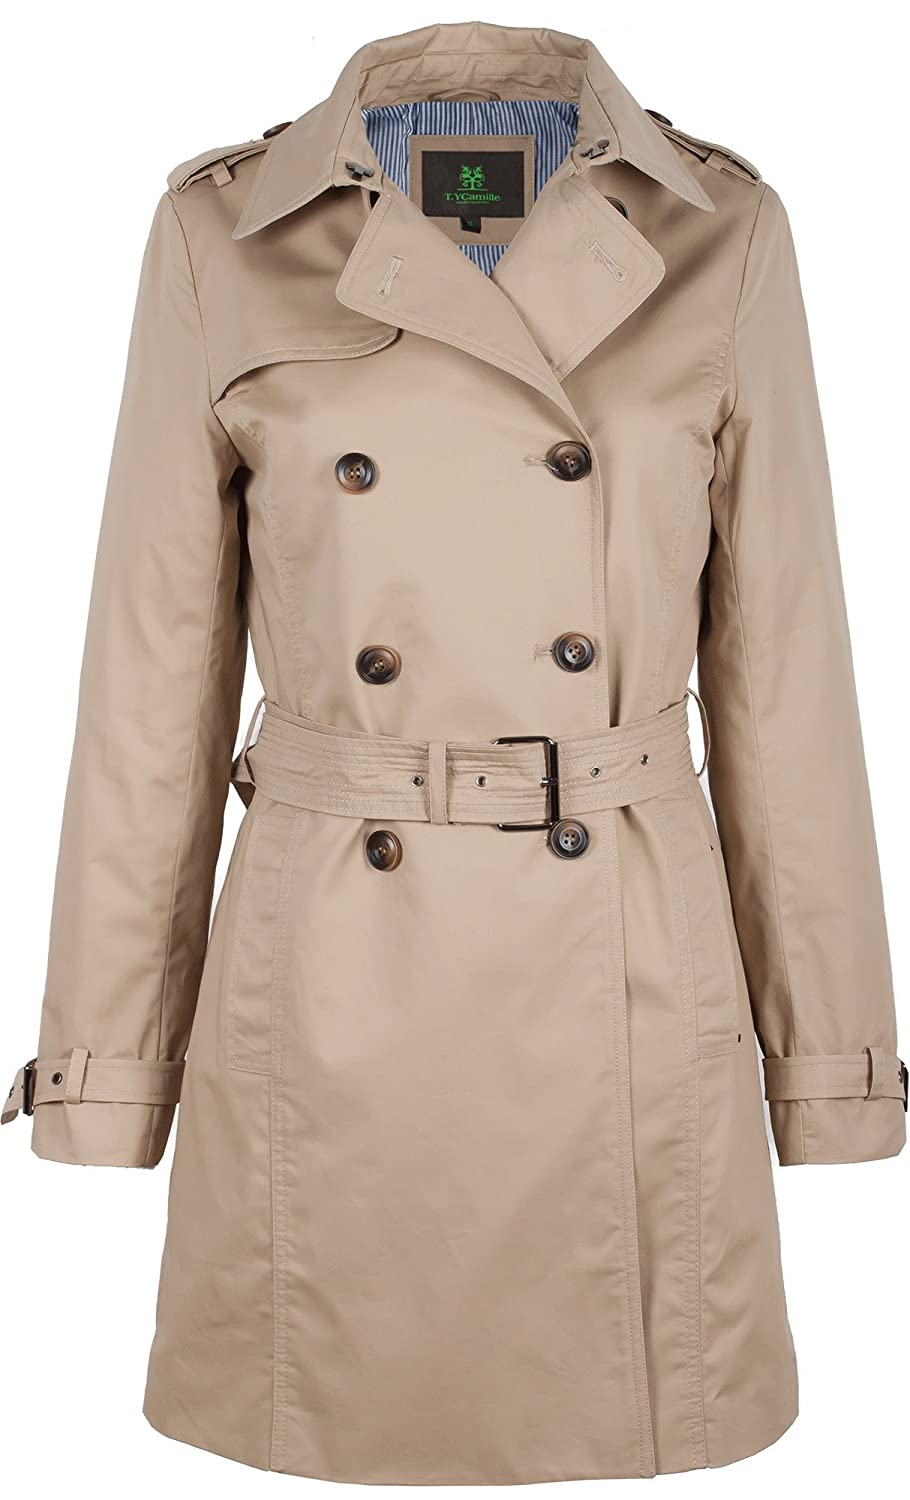 Grimada - Giacca - trench - Basic - Maniche lunghe - Donna